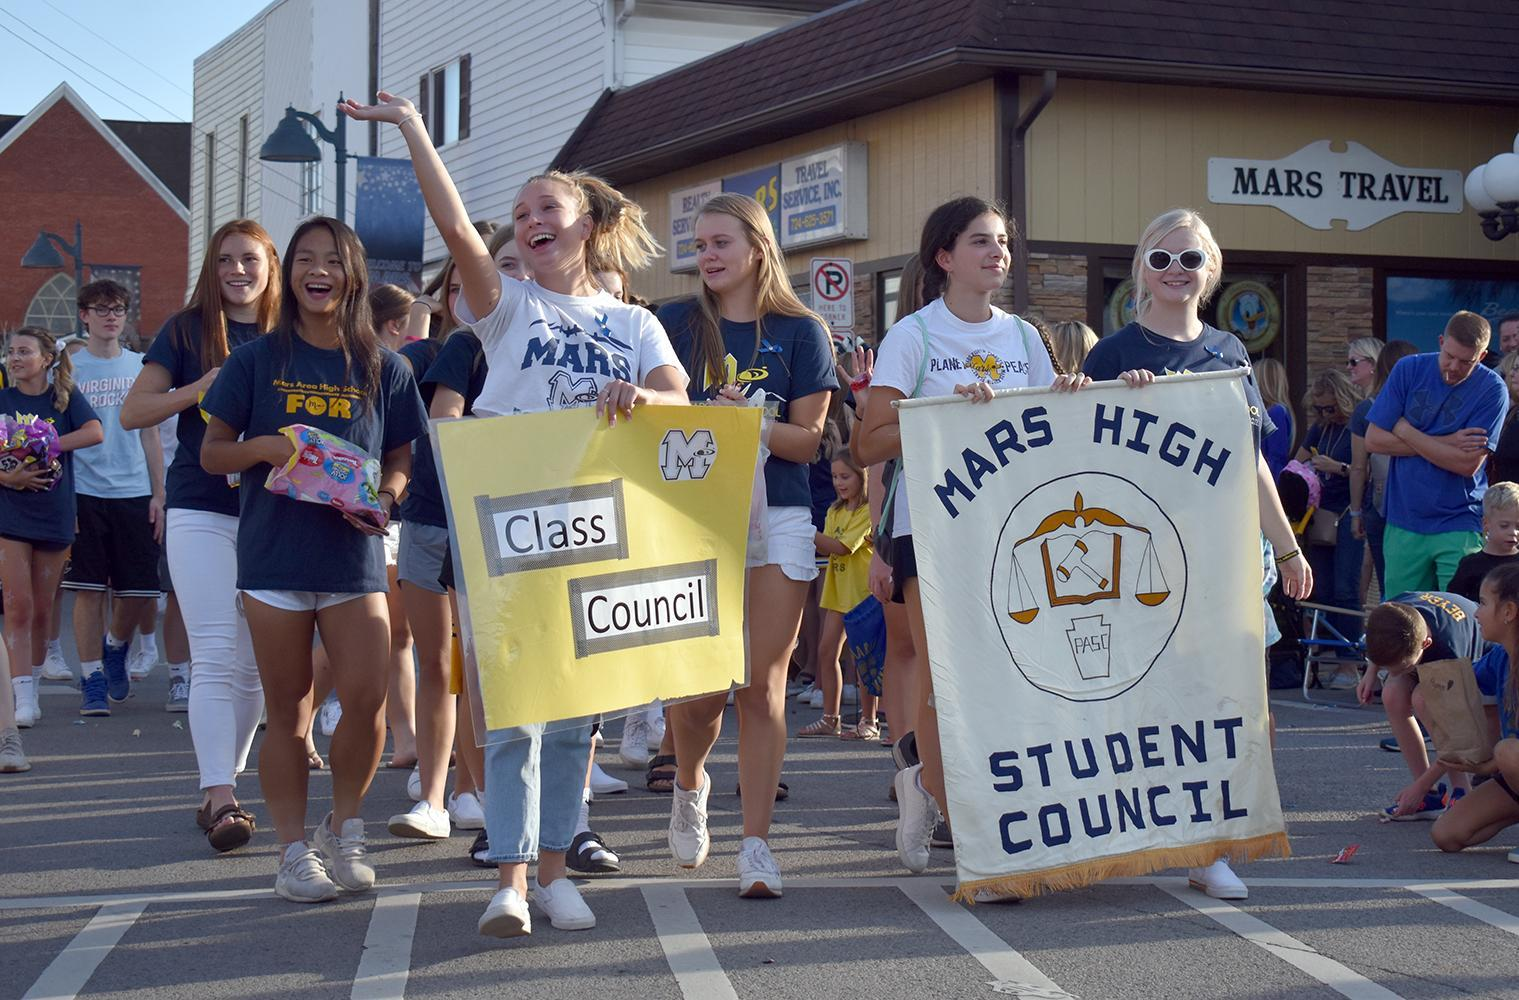 Mars Area High School Student Council Members